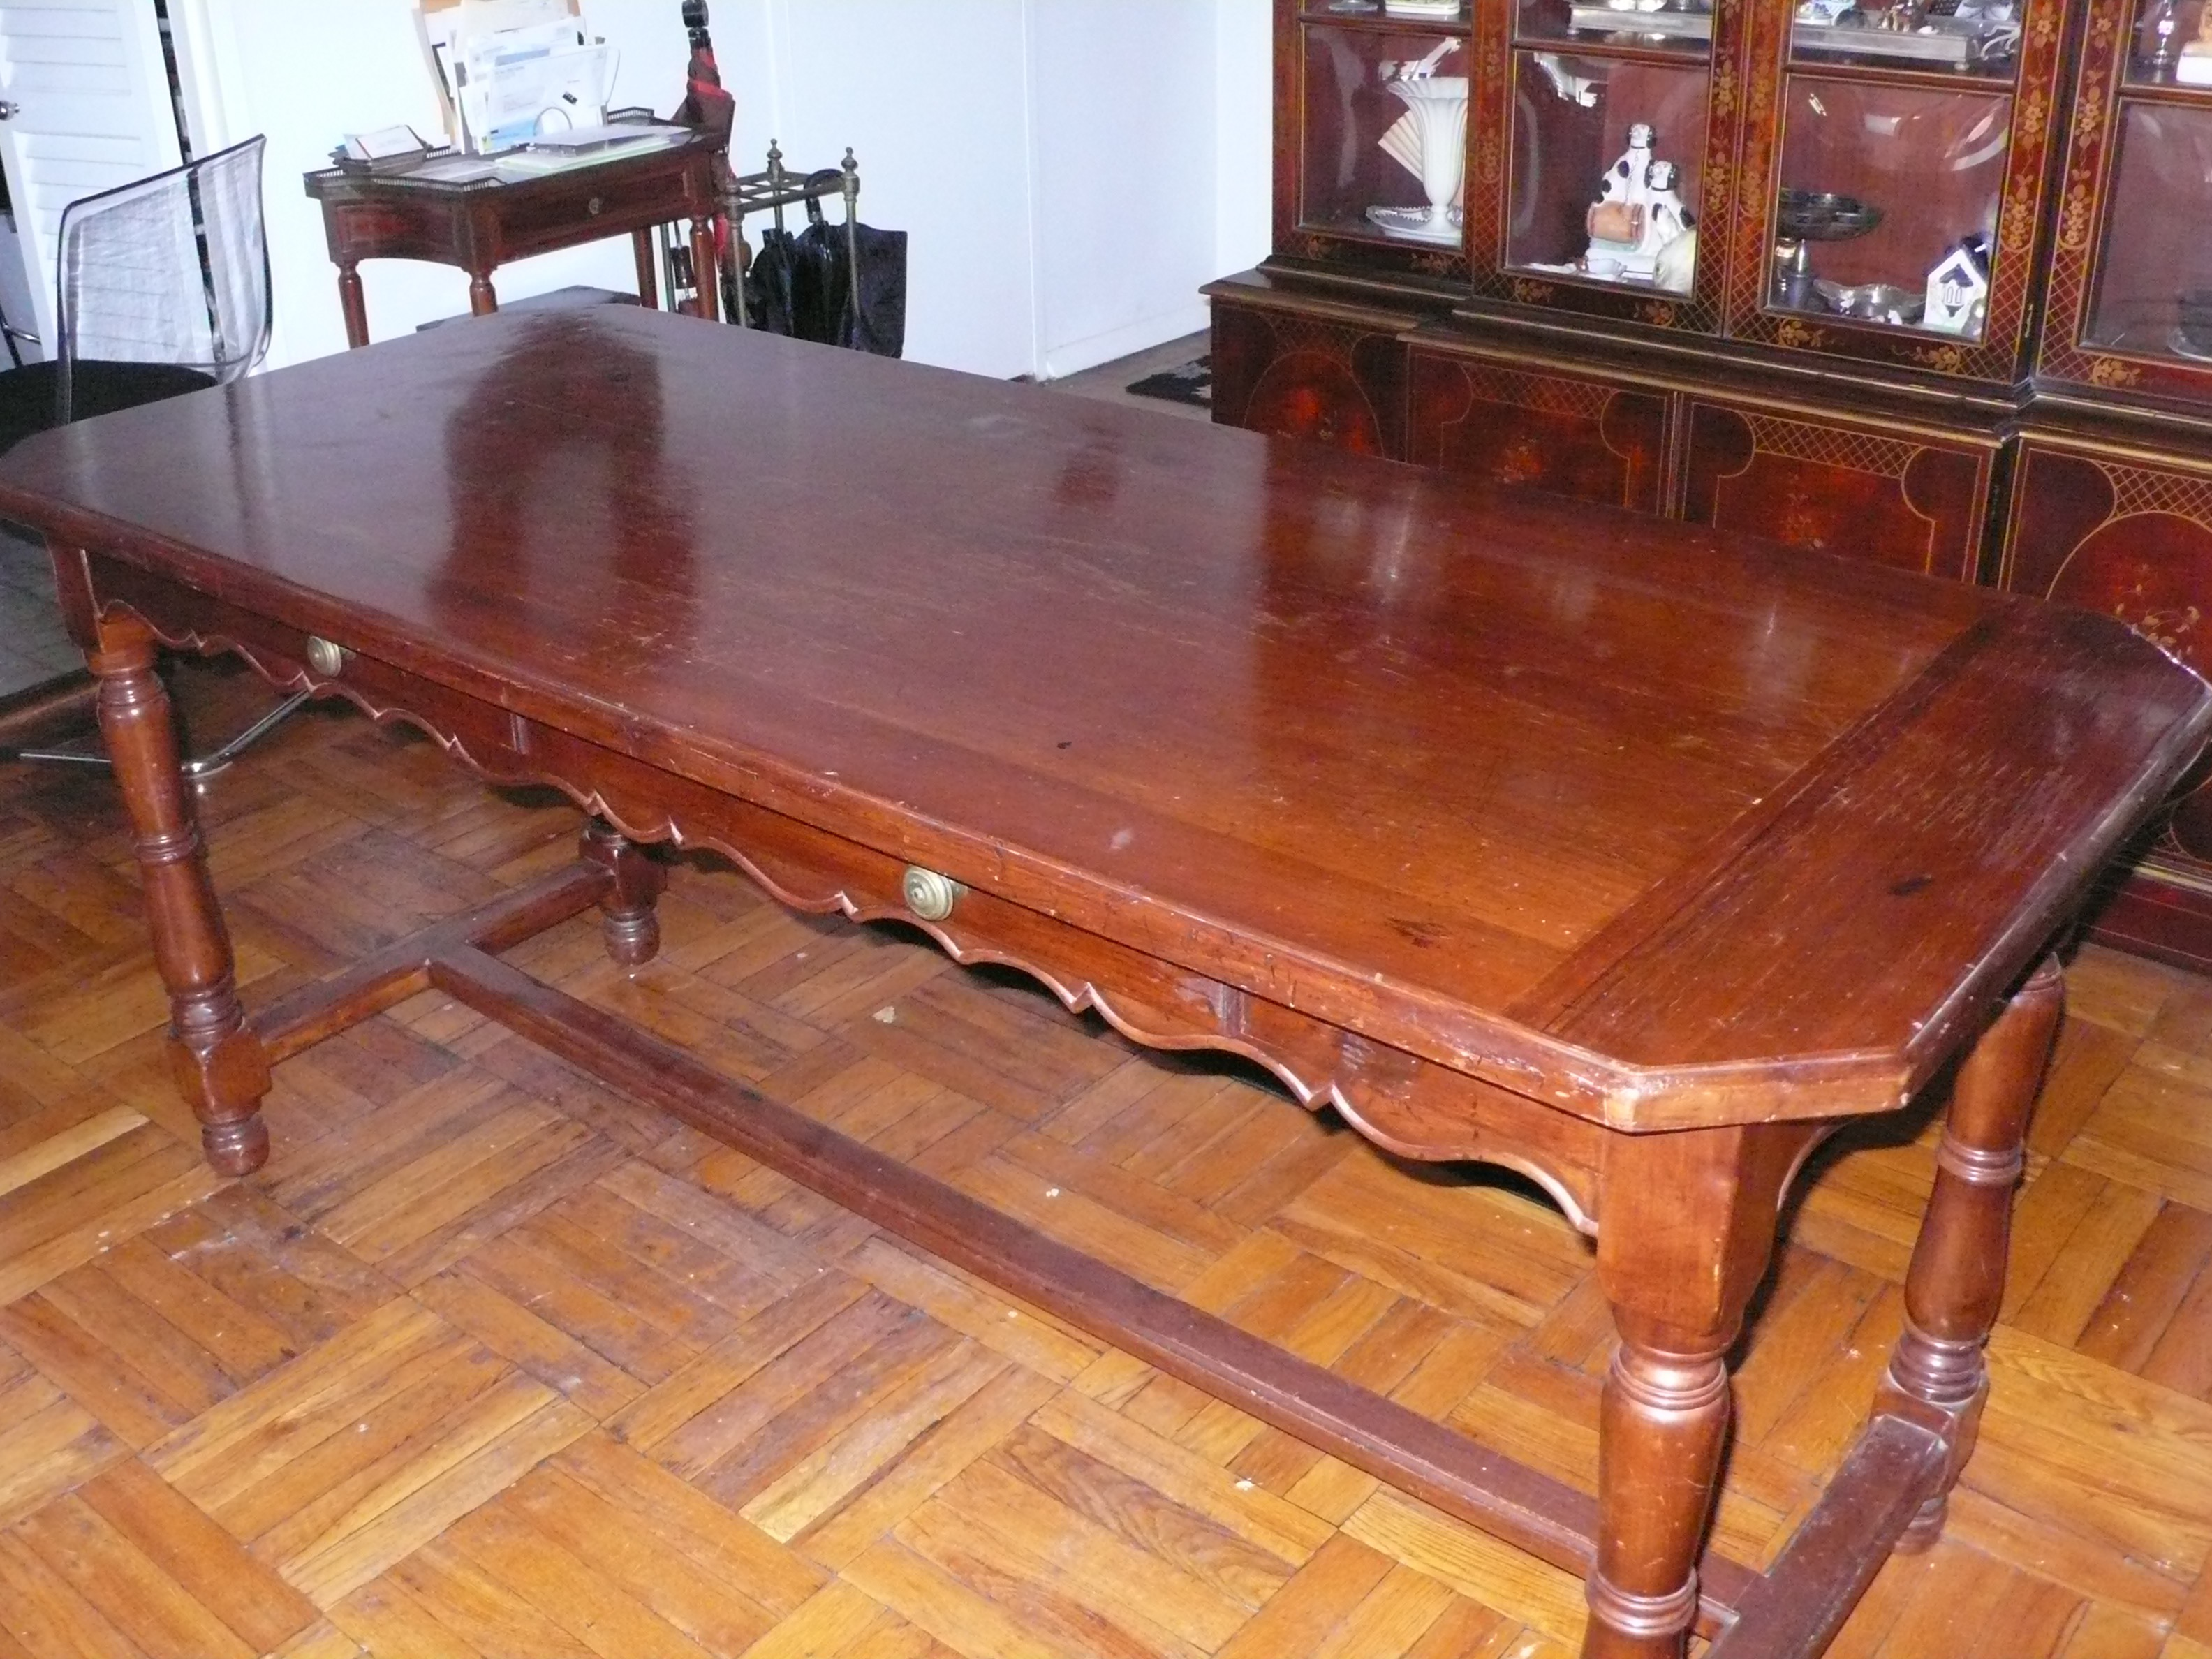 French Provincial Italian LibraryDining Table Chairish : 077e73cc 936c 4d88 8a75 5b46bf9af03easpectfitampwidth640ampheight640 from www.chairish.com size 640 x 640 jpeg 59kB